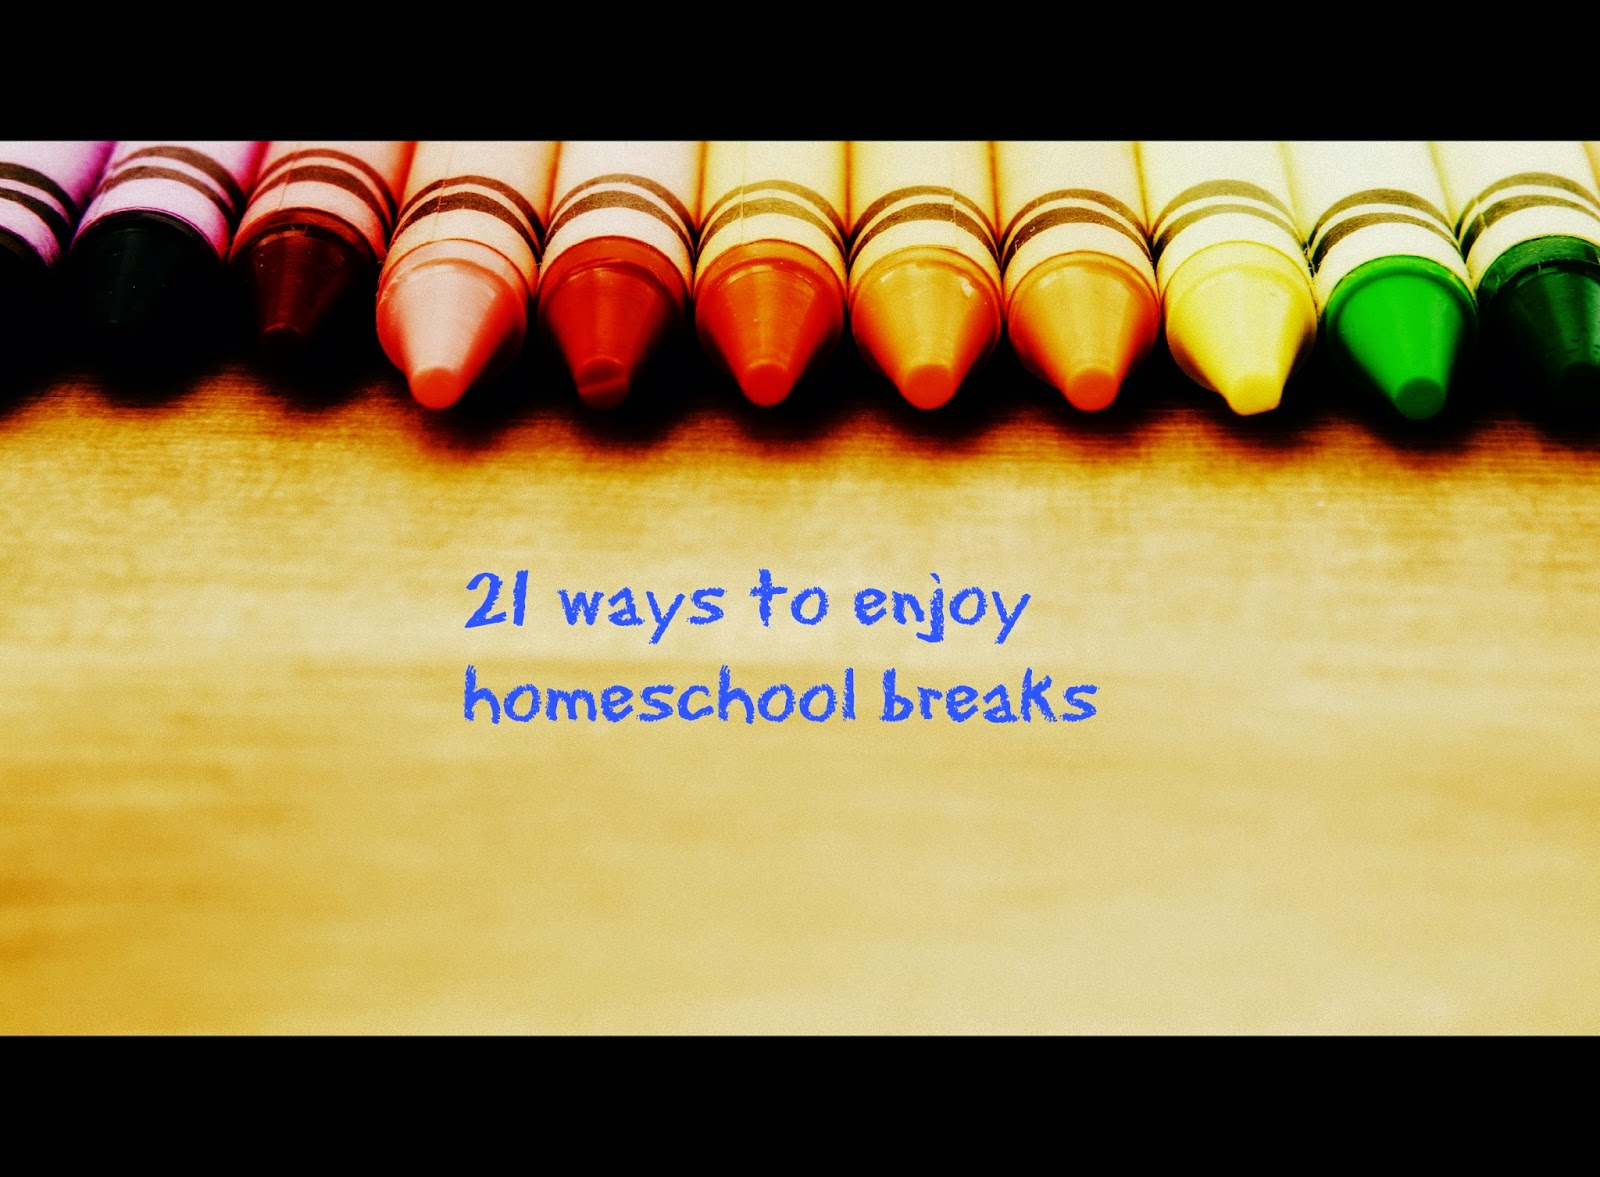 21 ways to enjoy homeschool breaks